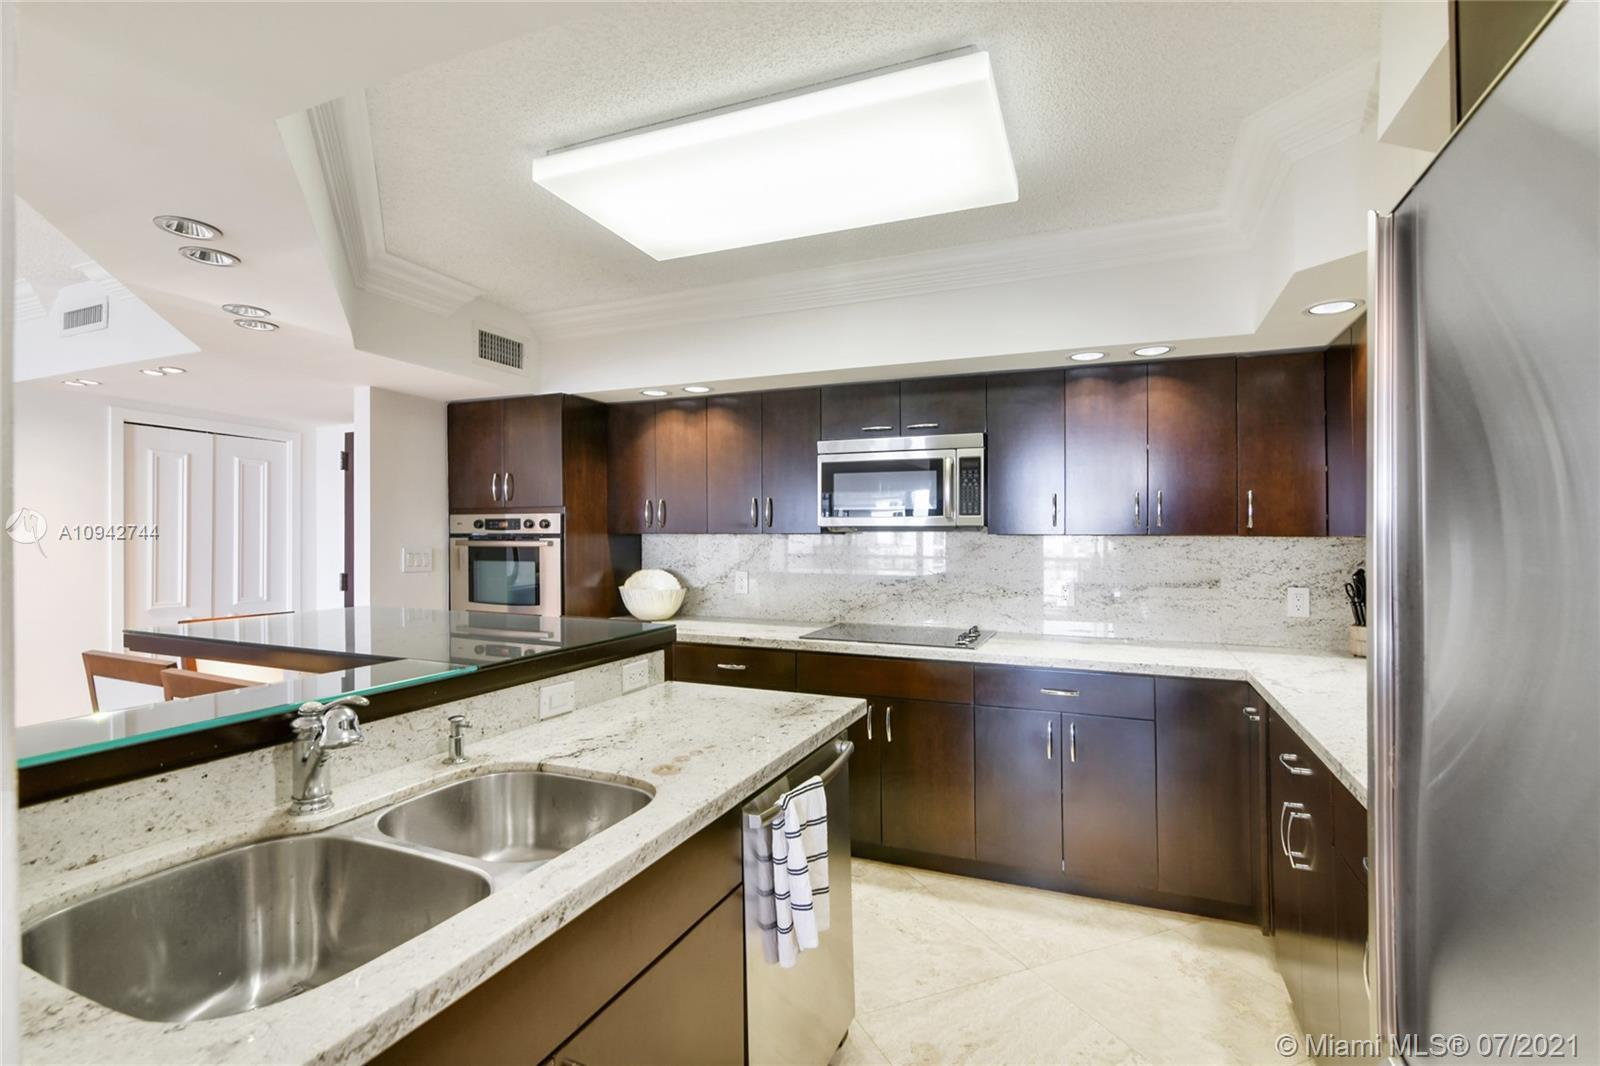 One of a kind. Completely remodeled and redesigned floorplan. Turn Key. Modern open kitchen with Bos